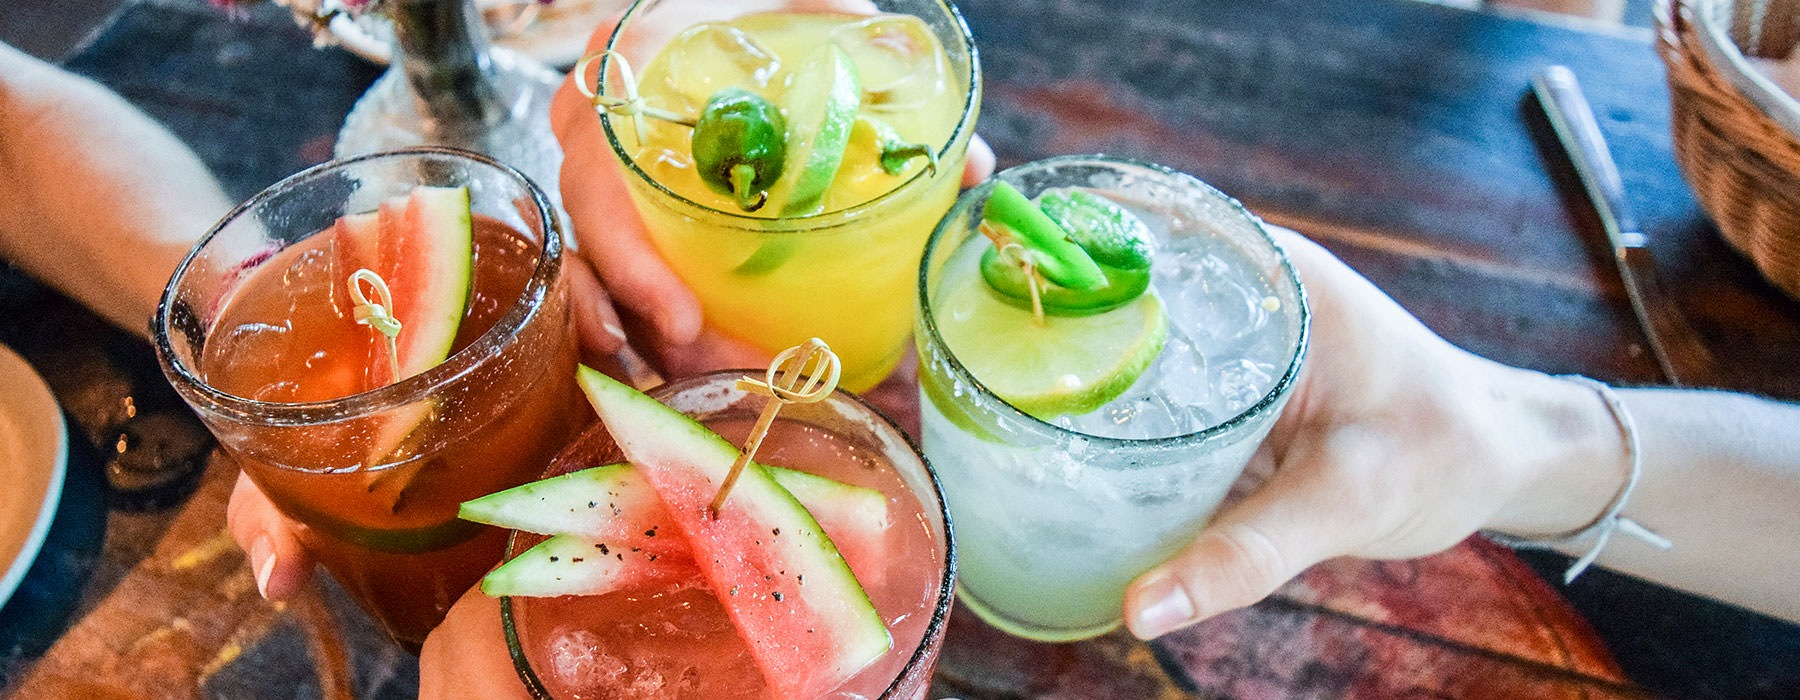 lifestyle image of s group of hands clicking their margaritas together